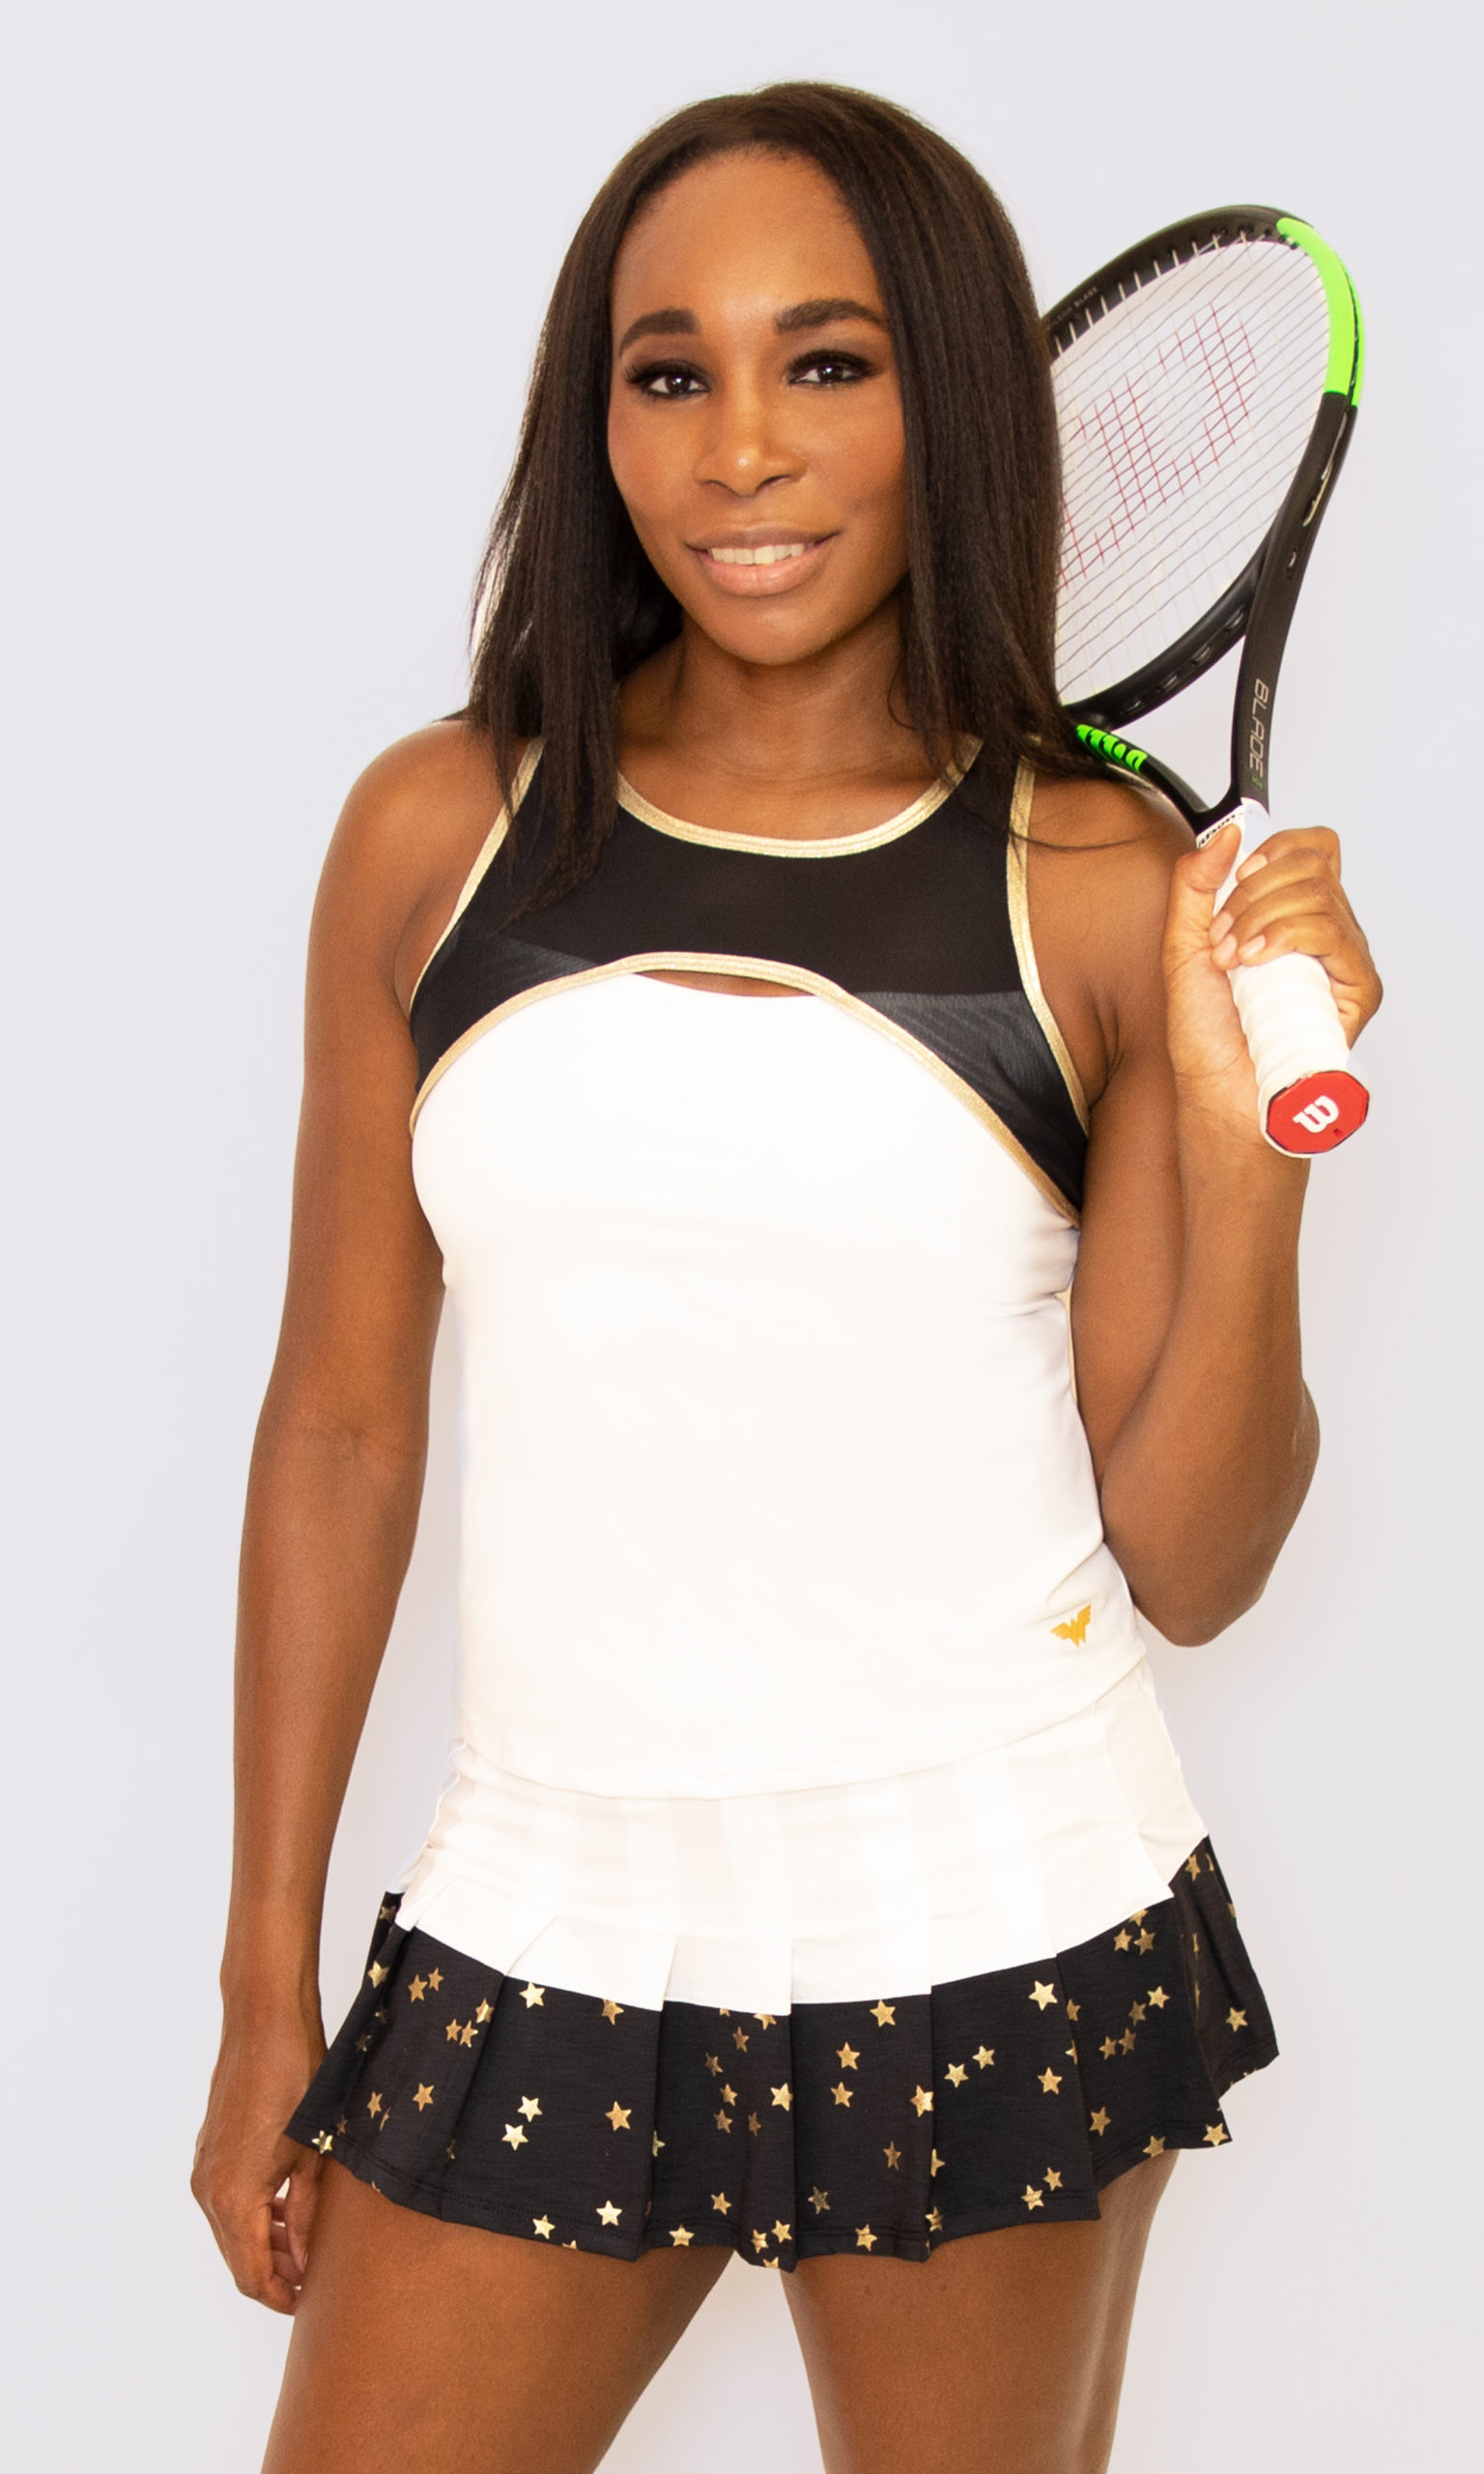 EleVen by Venus Williams x Wonder Woman collection includes tennis wear, t-shirts, and hoodies 15